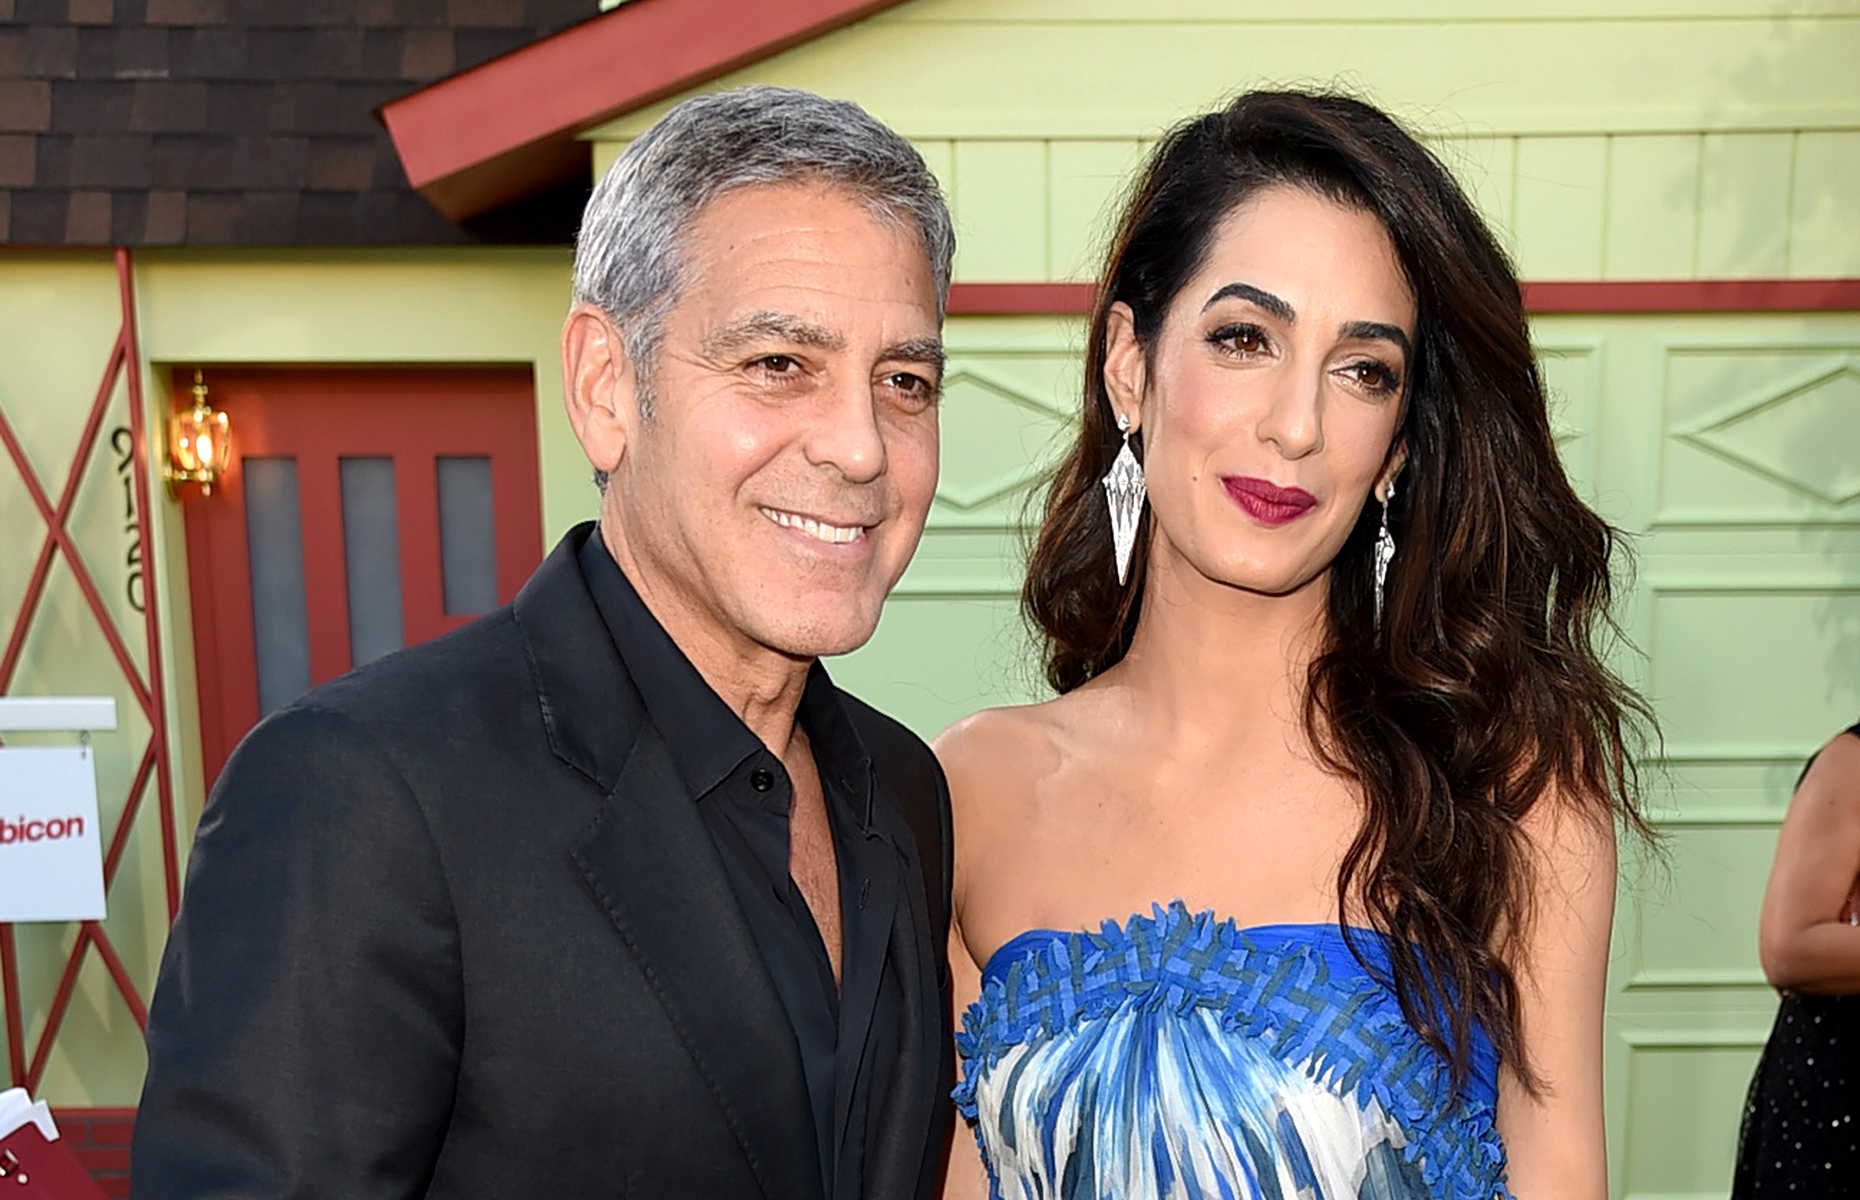 George and Amal Clooney will serve lunch to you and a guest if you win the fundraising raffle. Image: Kevin Winter/Getty Images